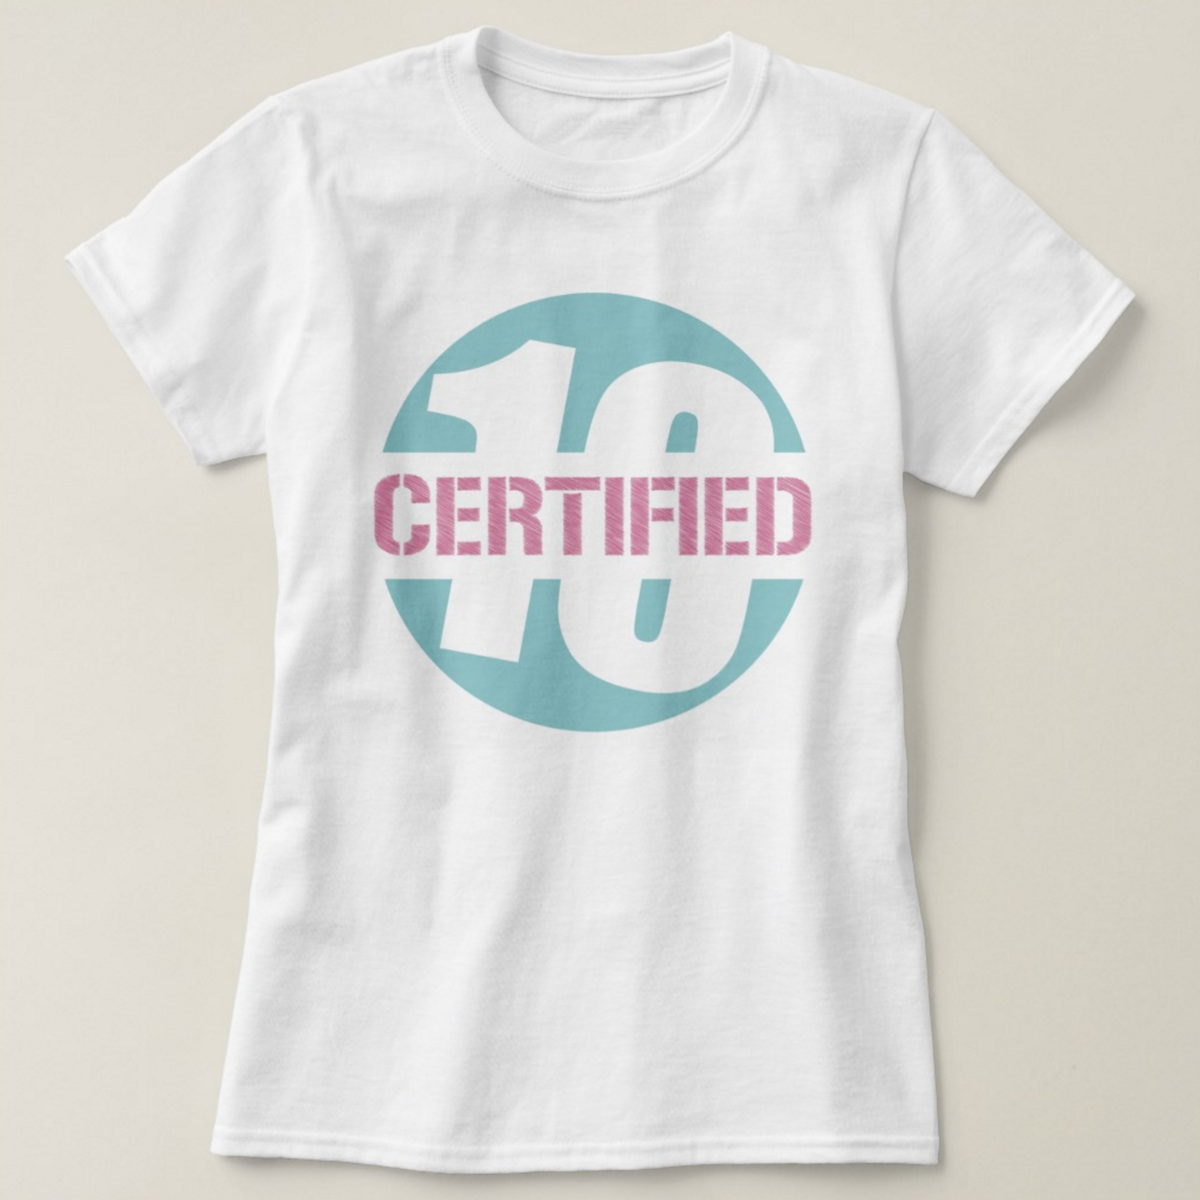 Image of Certified 10 Logo Tee